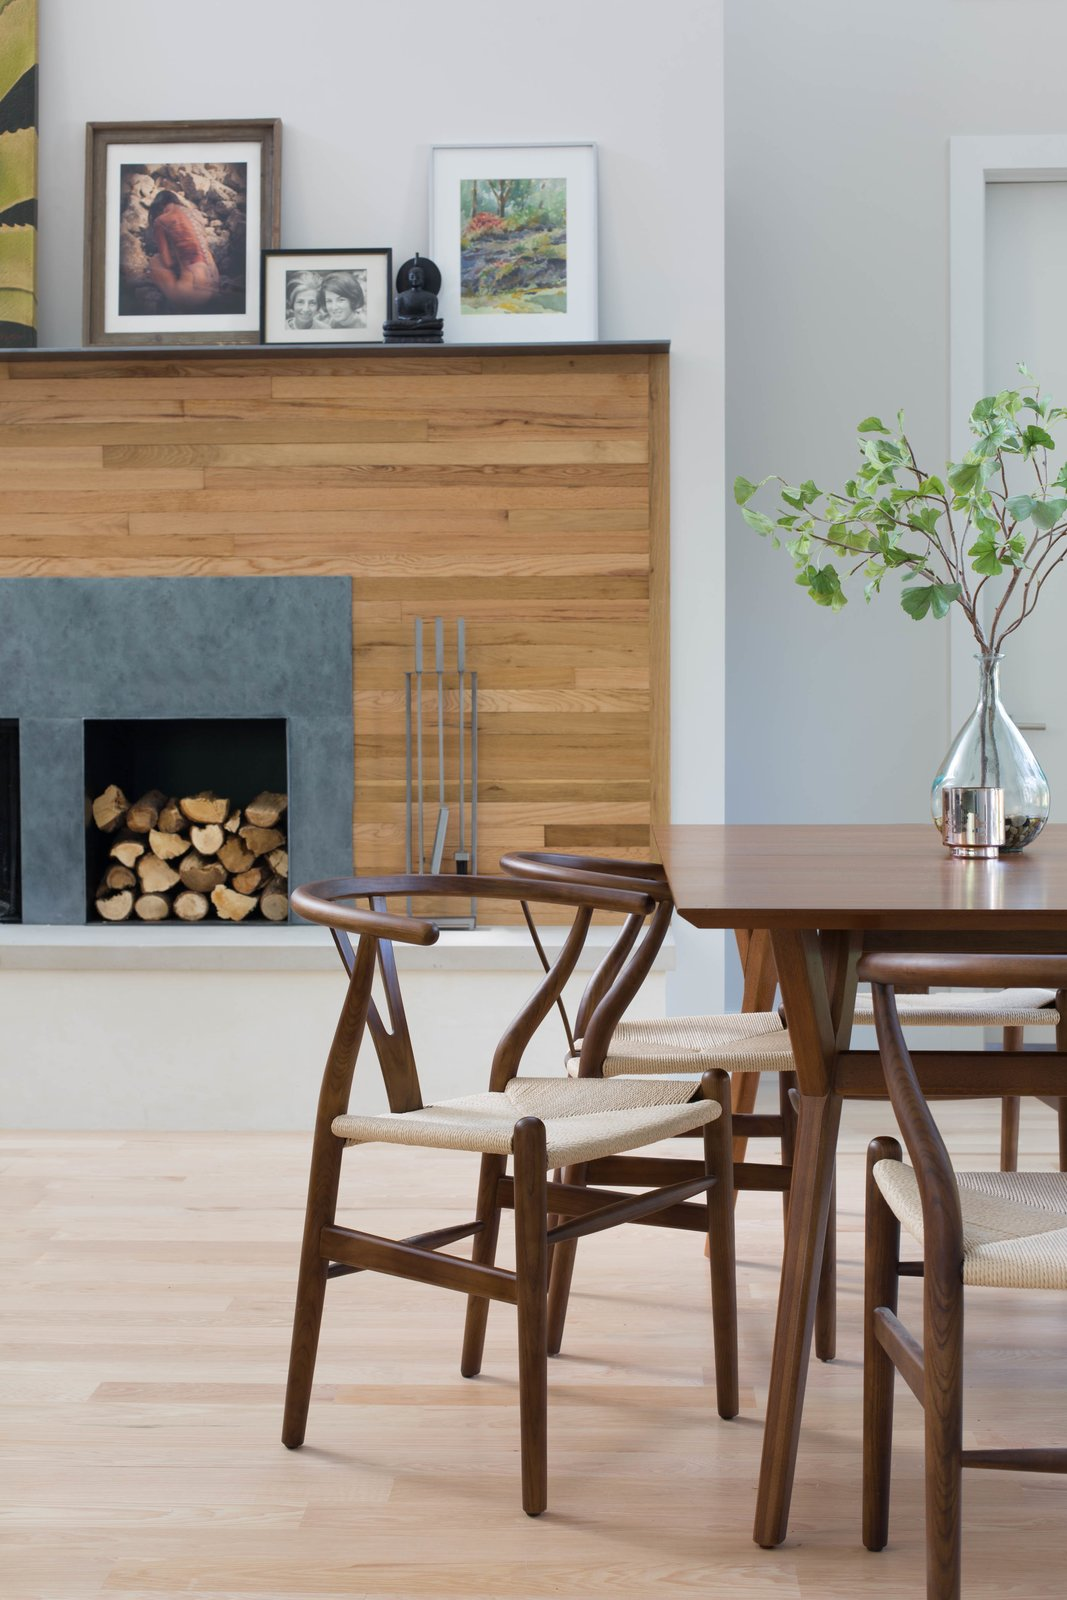 The wood used on the fireplace wall was salvaged from the floor of the old home that the Architect and her husband lived in before eventually deciding to build a new home in its place. It was painstakingly salvaged, sorted, stripped, cut, and re-stained before finding new life as a wall finish.